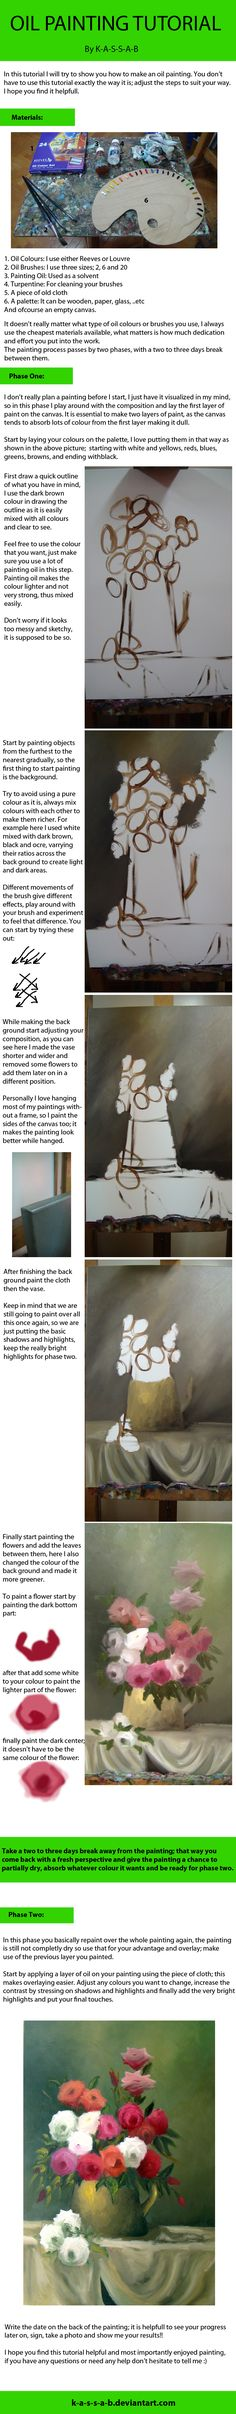 Oil Painting Tutorial by K-A-S-S-A-B.deviantart.com on @deviantART